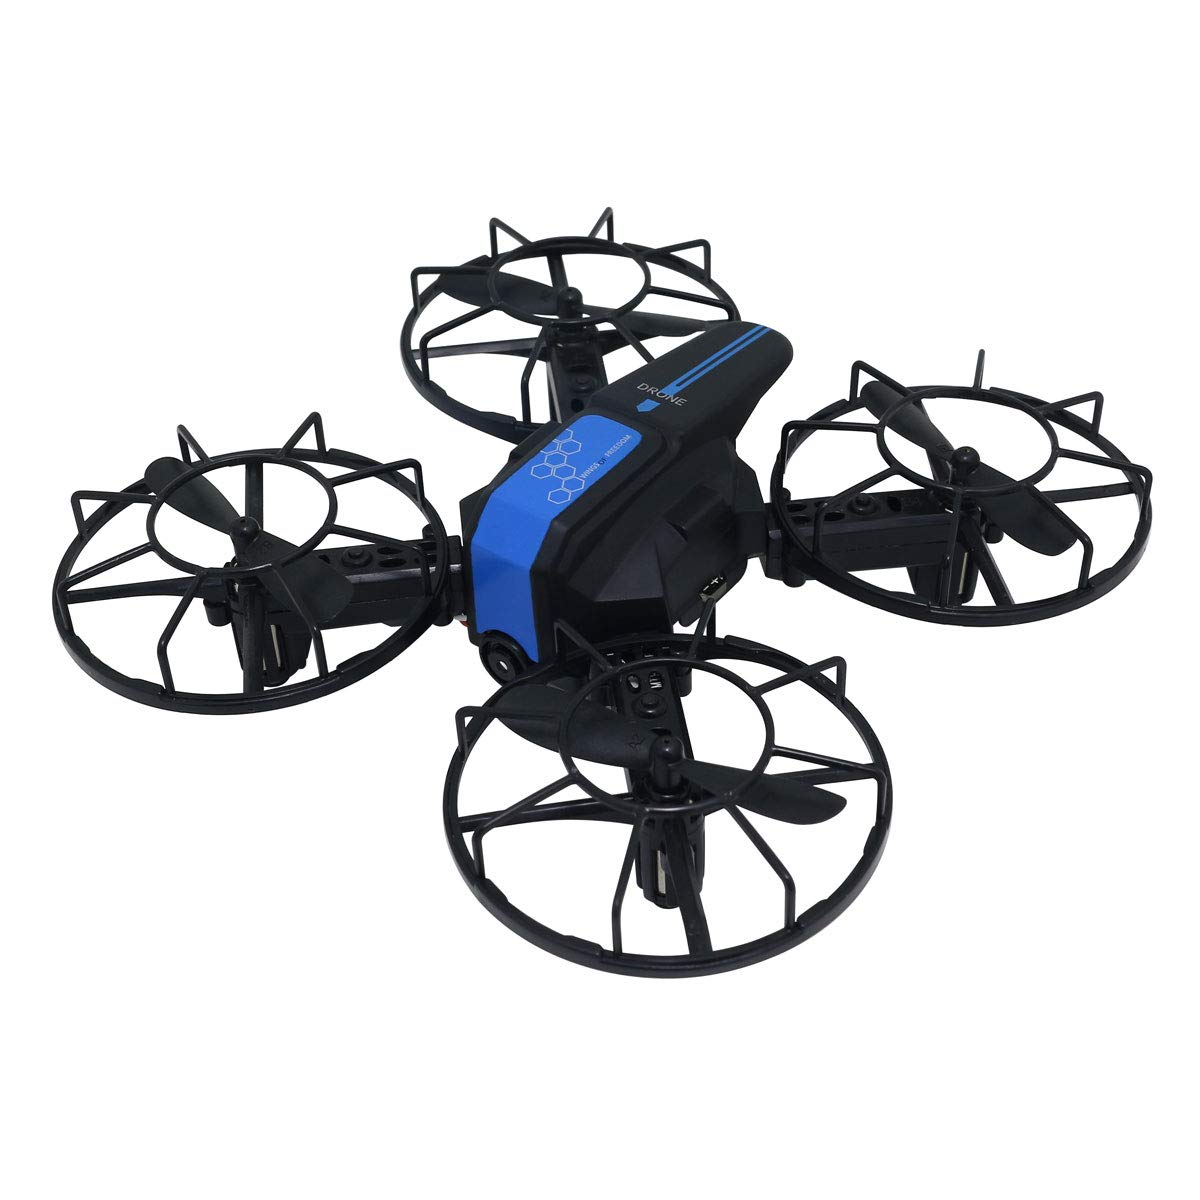 Lutema Cluster Specter - Modular Quadcopter Drone with 720P Video Capacity, Six Axis Gyro & 360º Flip Capability (Blue)